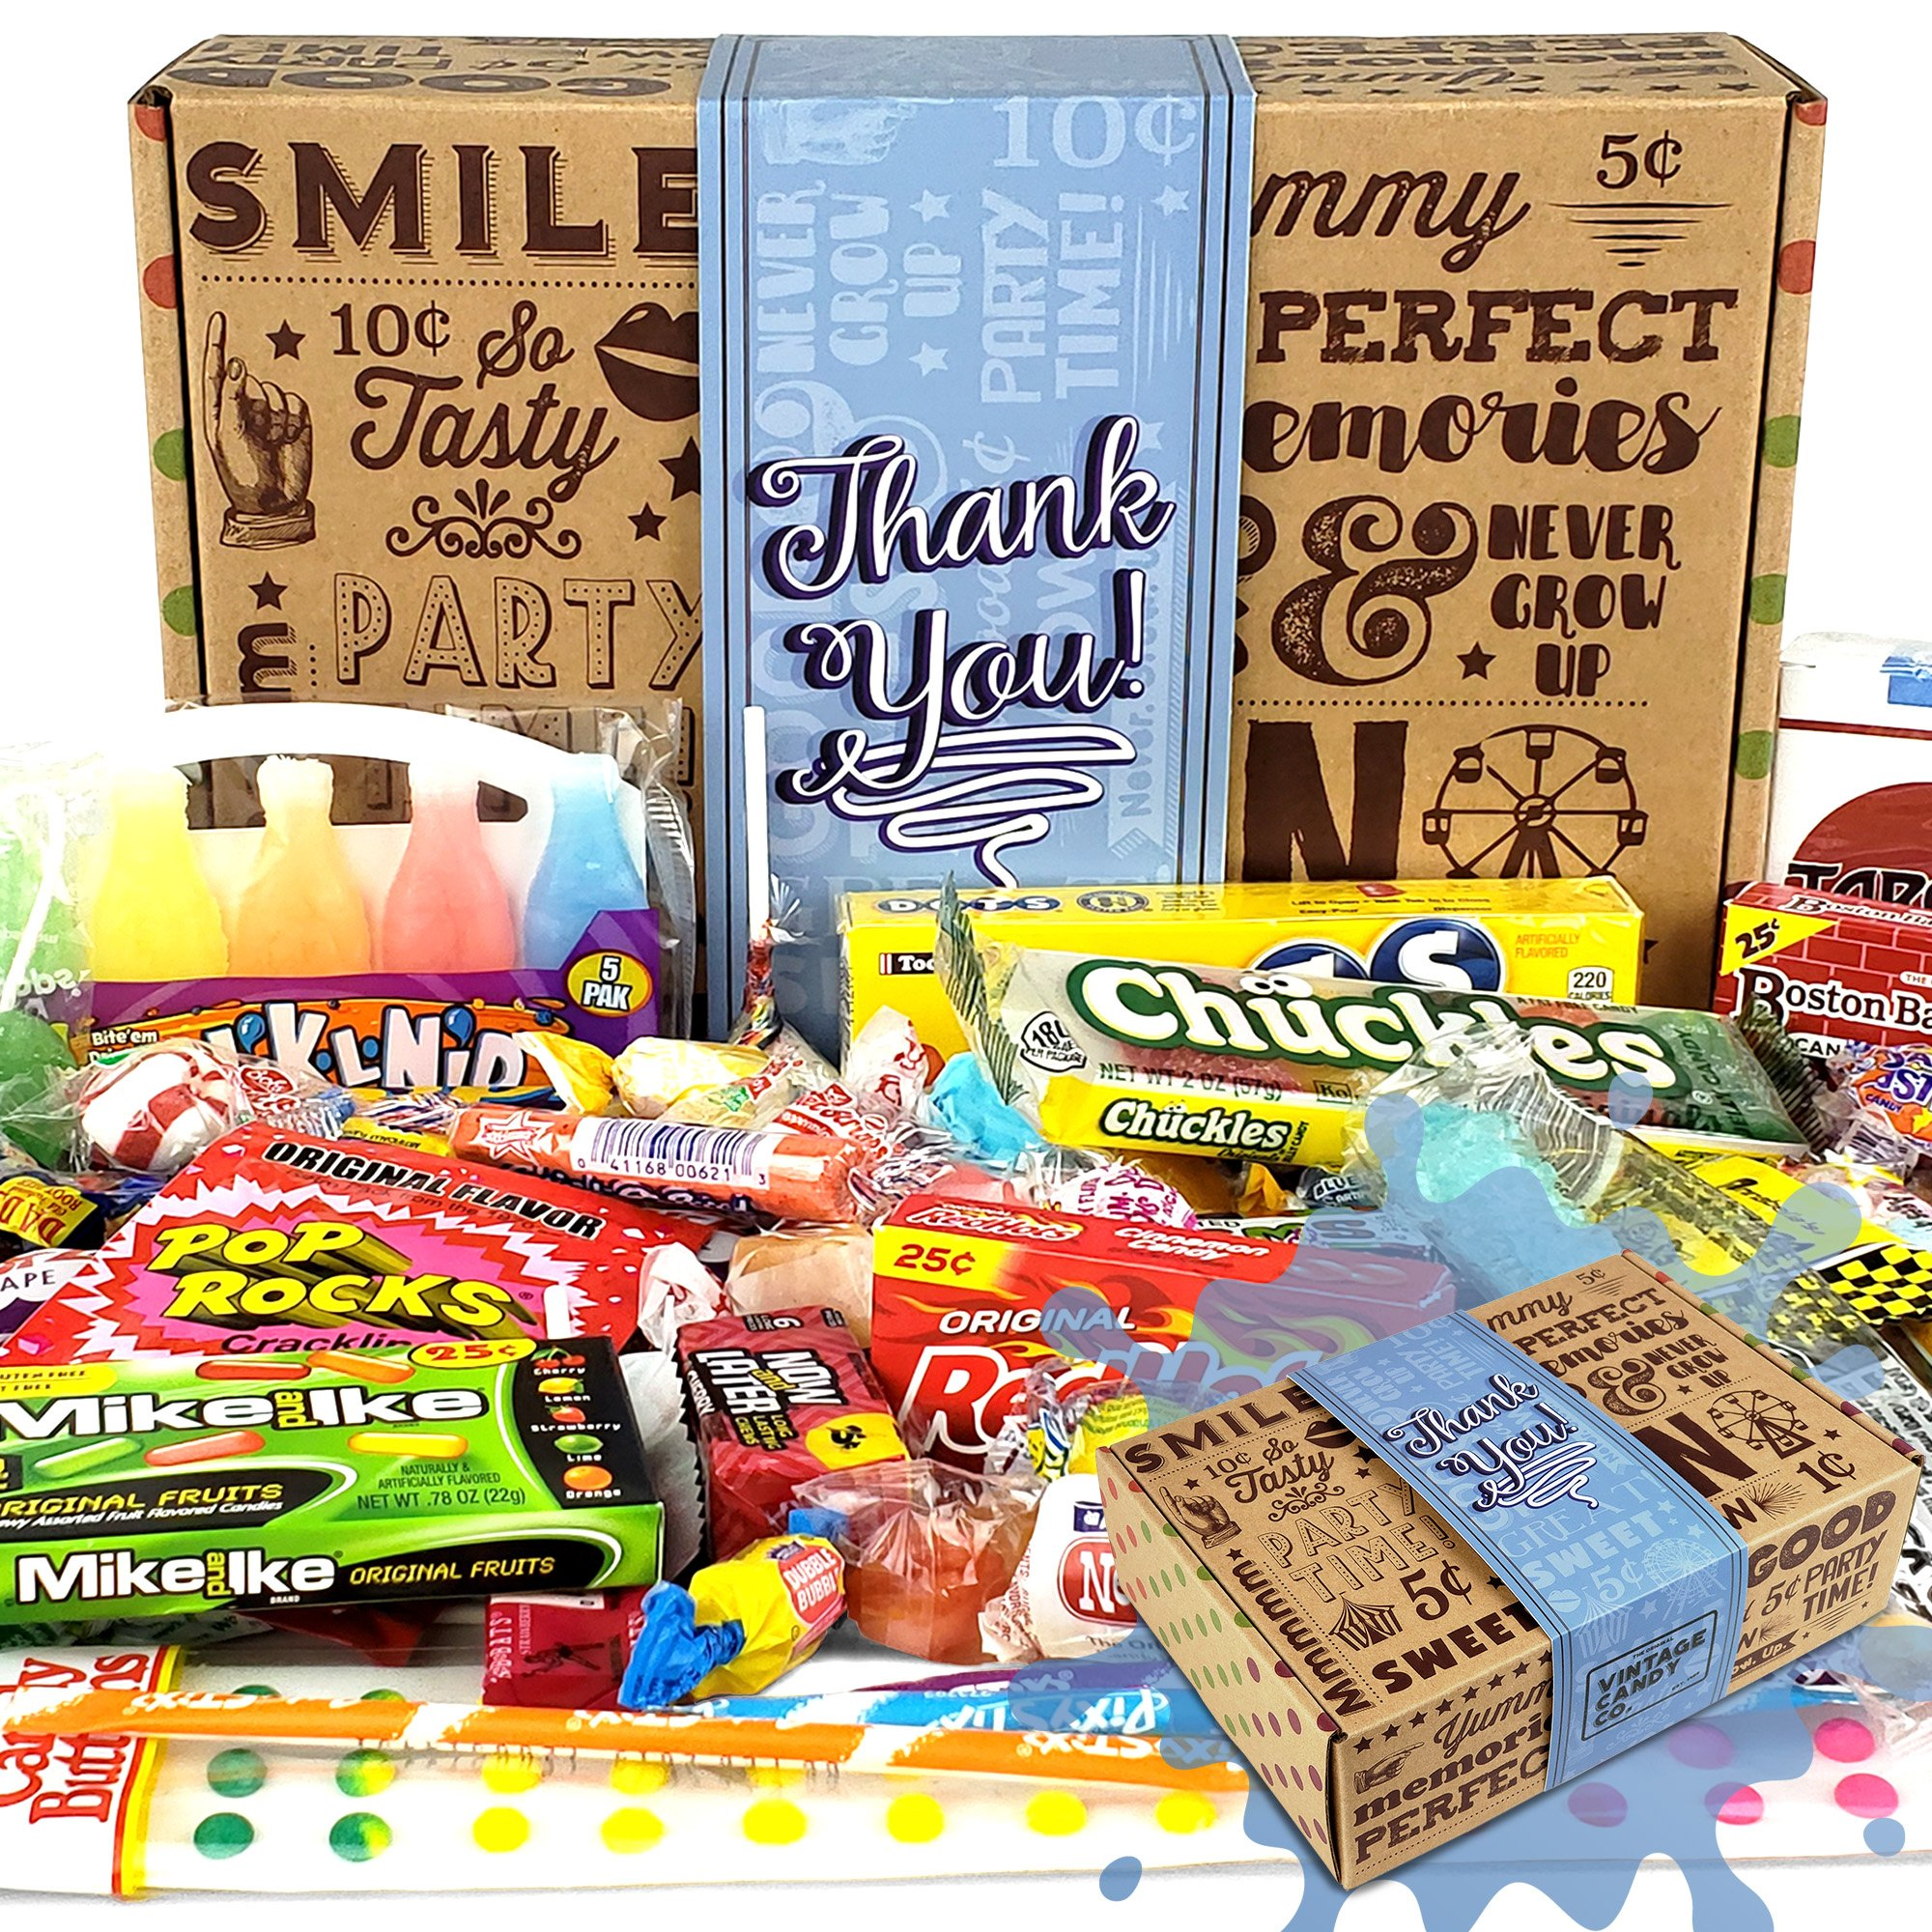 Vintage Candy Co. THANK YOU GIFT BASKET CANDY BOX For Men Or Women | SAY THANKS With A Unique Assortment of Nostalgic Decade Candy PERFECT Gratitude Gift for Women Men Girls Boys Coworkers Teens Etc. by Vintage Candy Co.